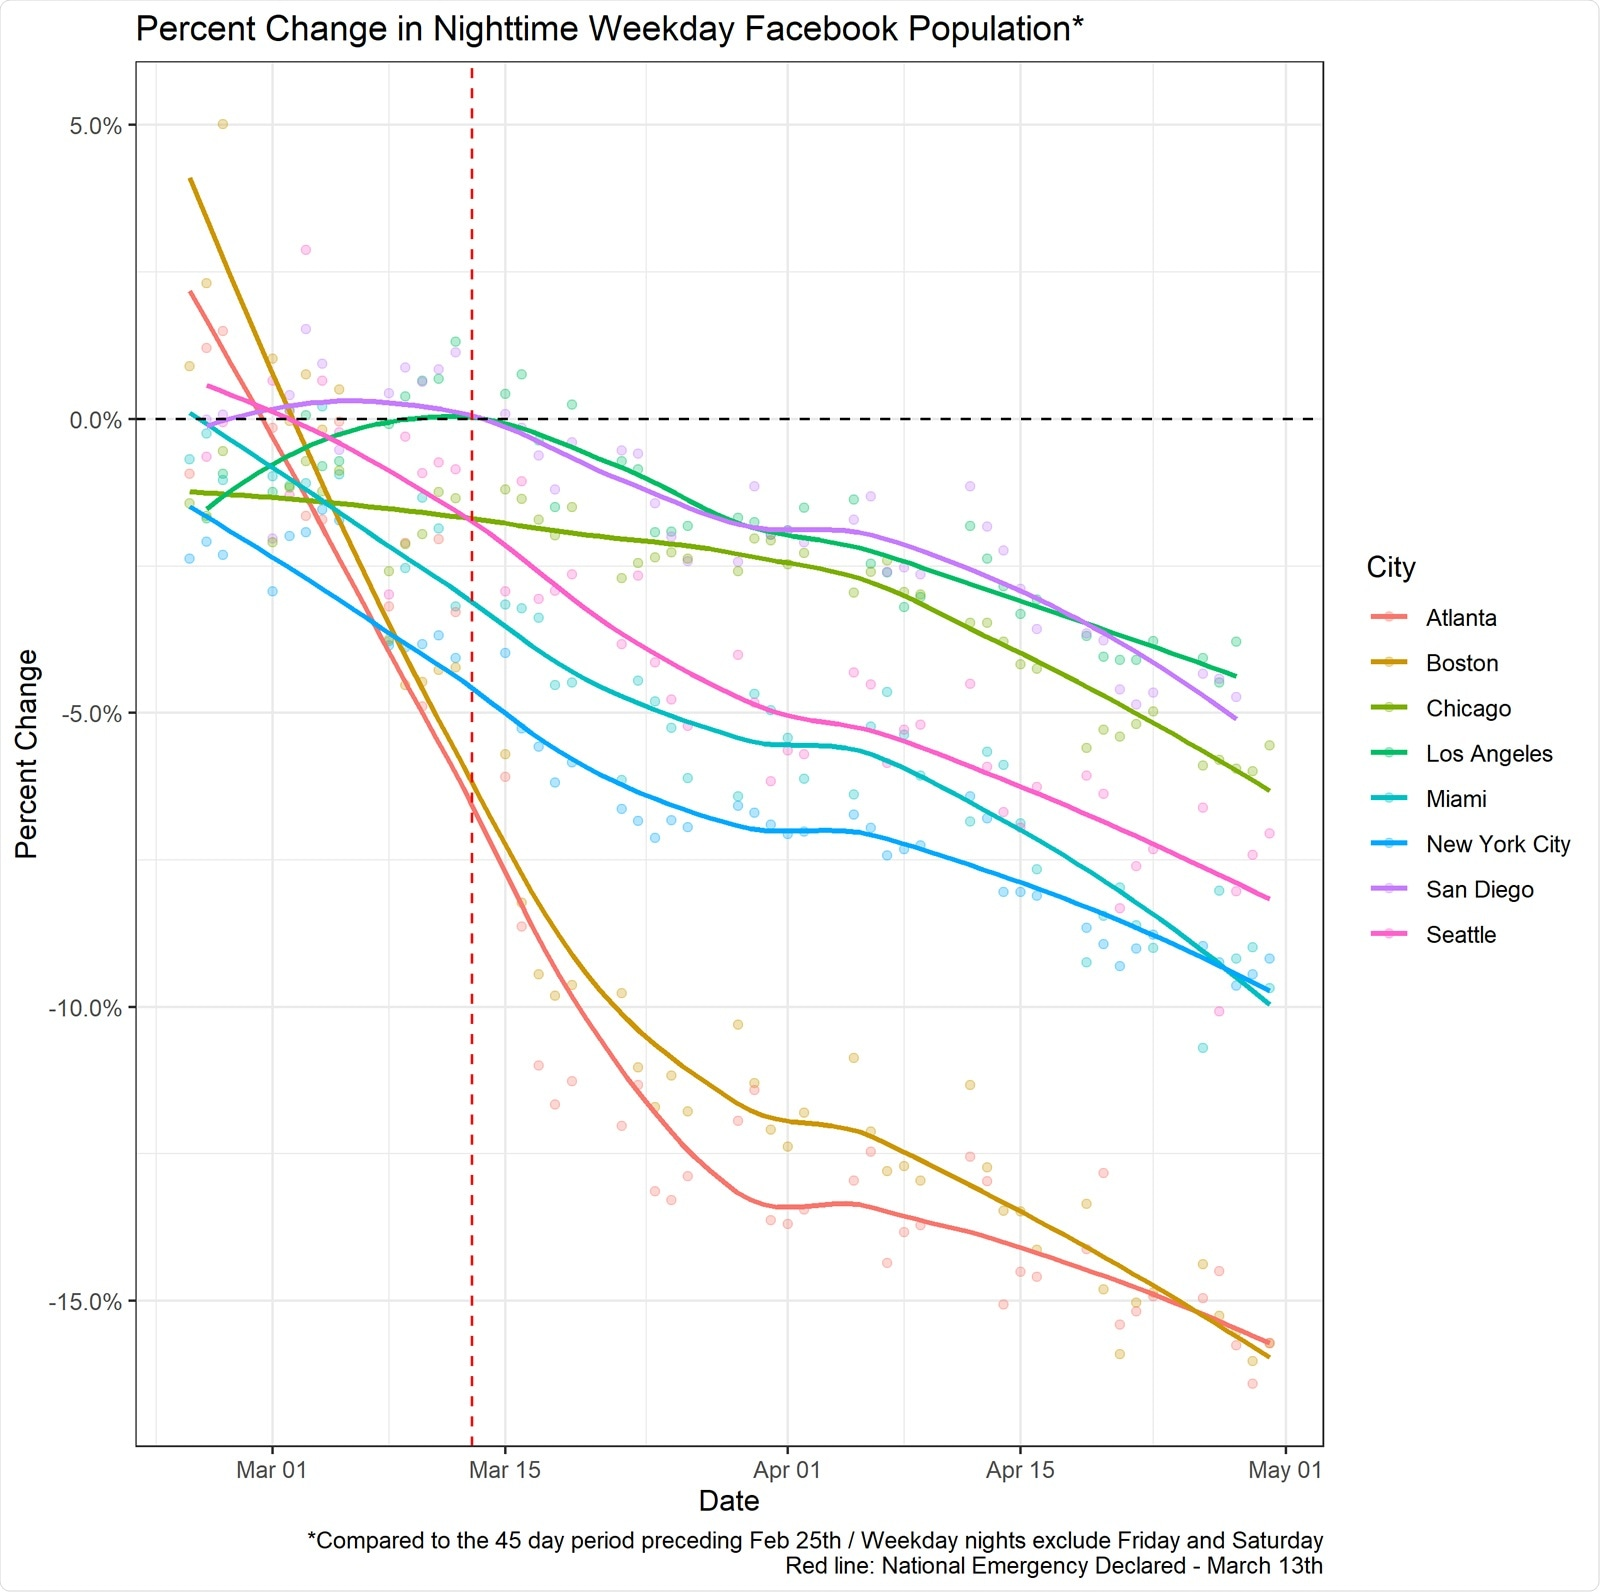 Percent change in weekday nighttime population of Facebook users by city. We can see that all cities included in the Facebook sample experience a decrease in nighttime population over the period of interest.